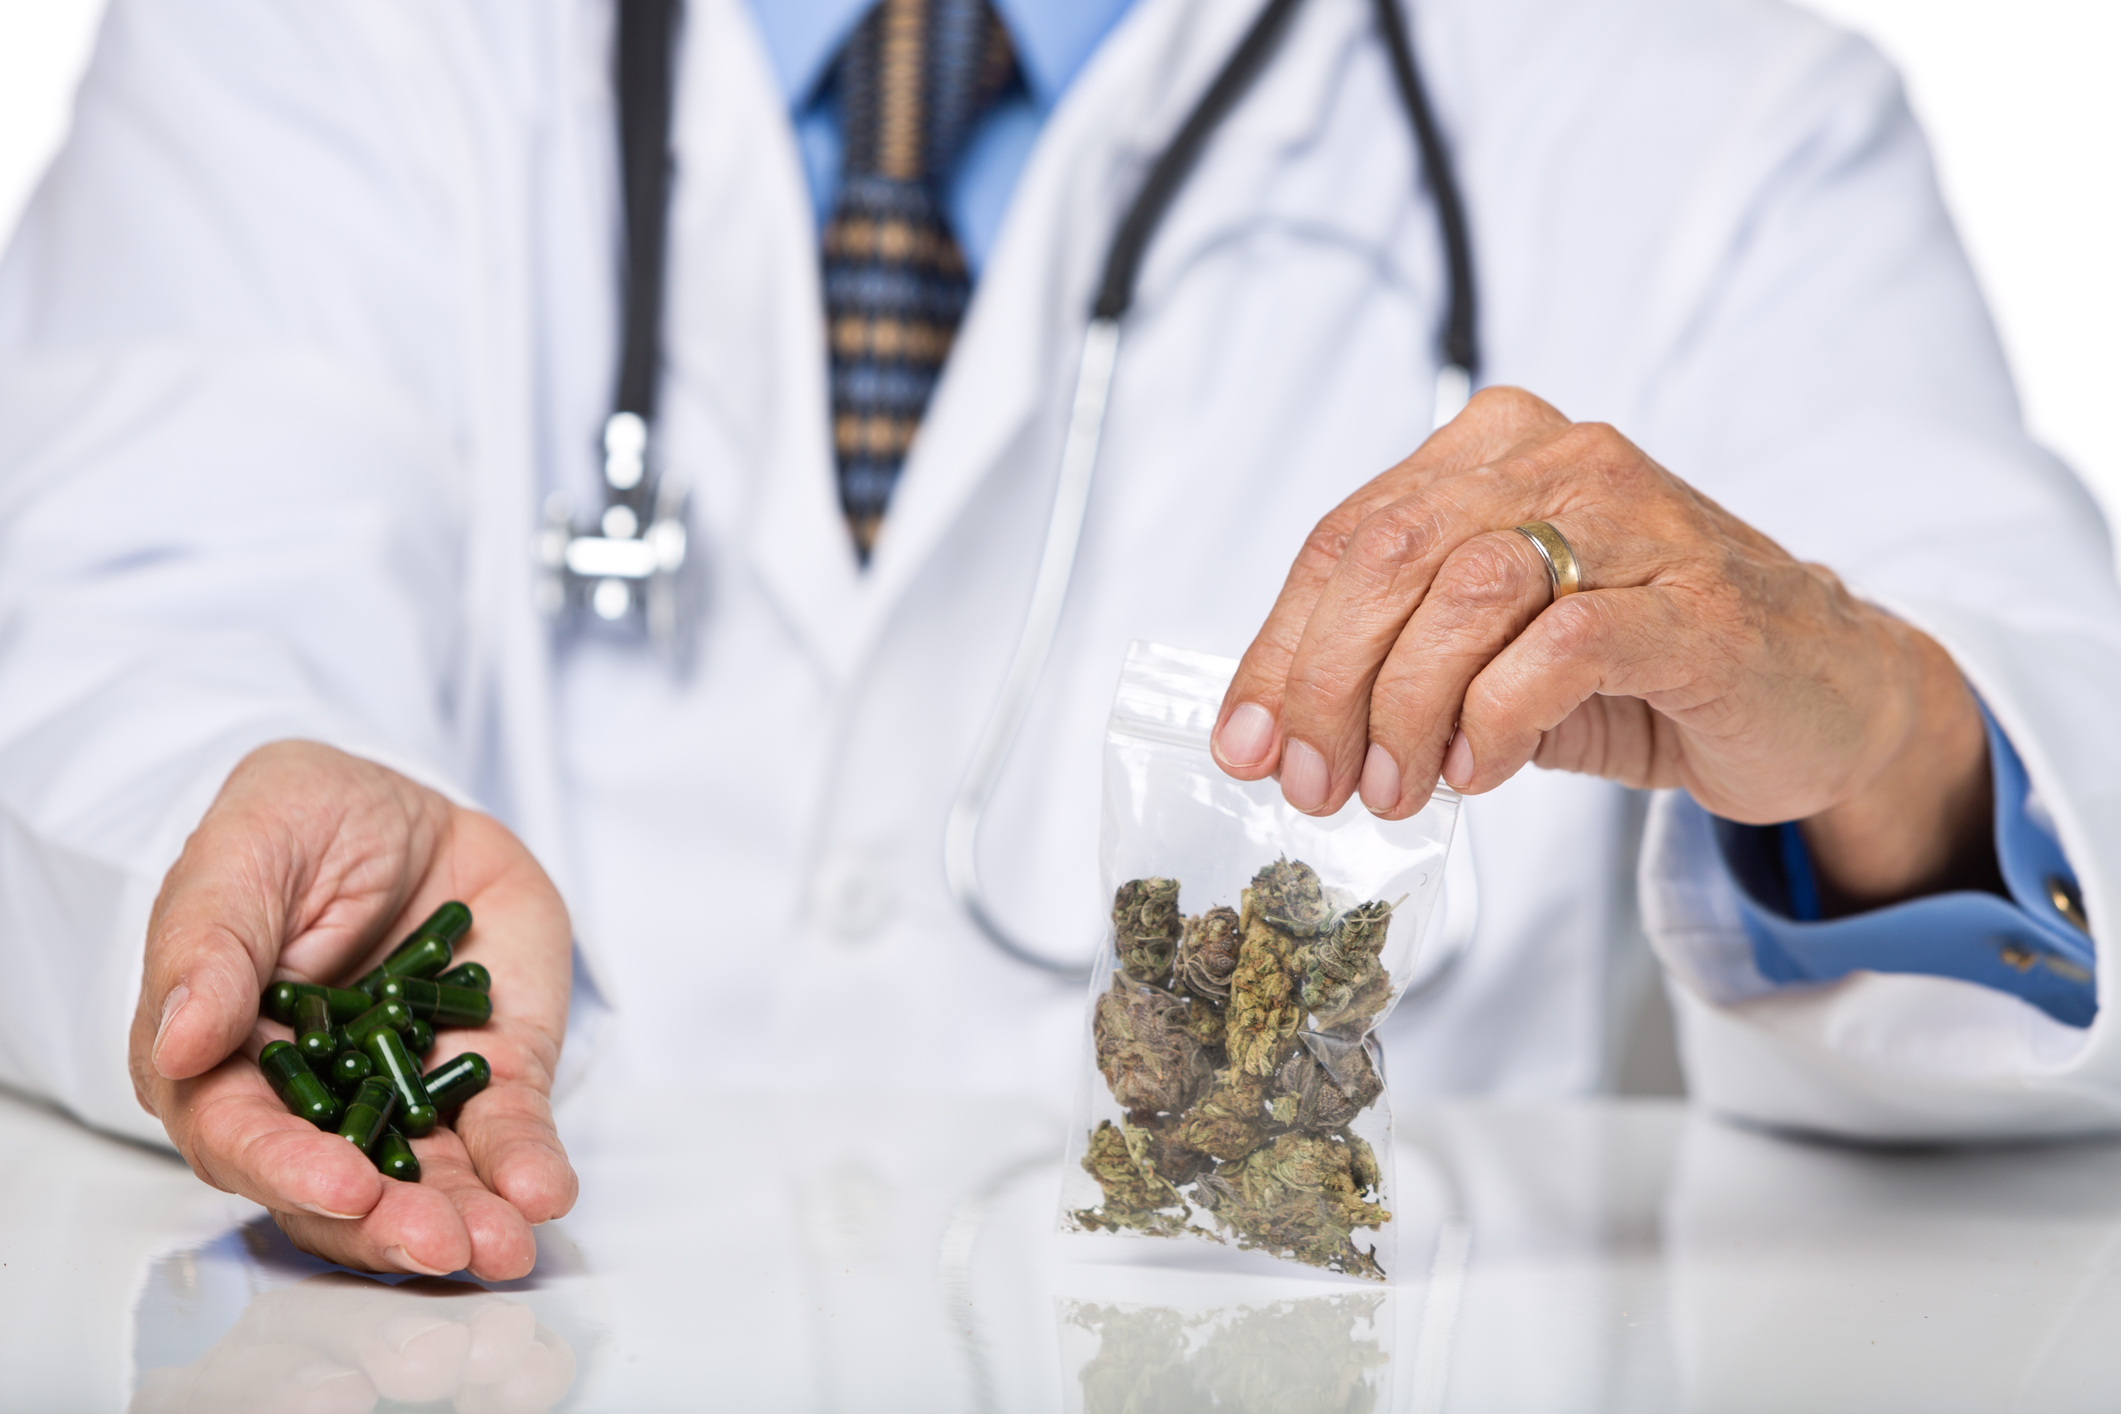 A physician holding a baggie of dried cannabis buds in his right hand, and cannabis oil capsules in his left hand.